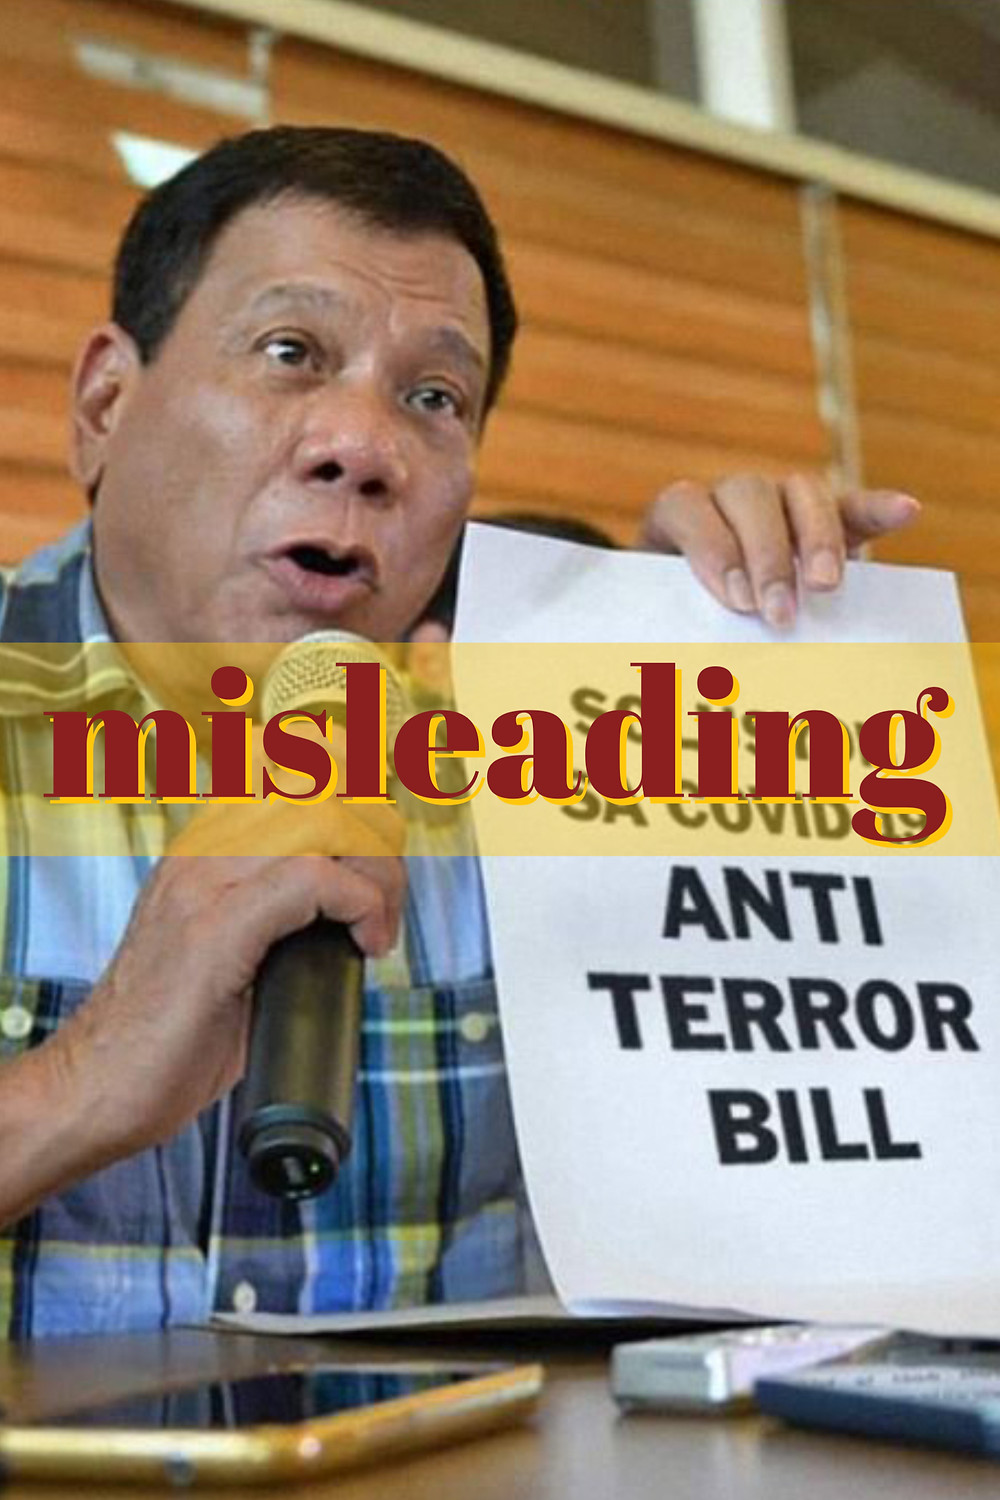 Doctored image of President Duterte holding a sign supporting the antiterror bill